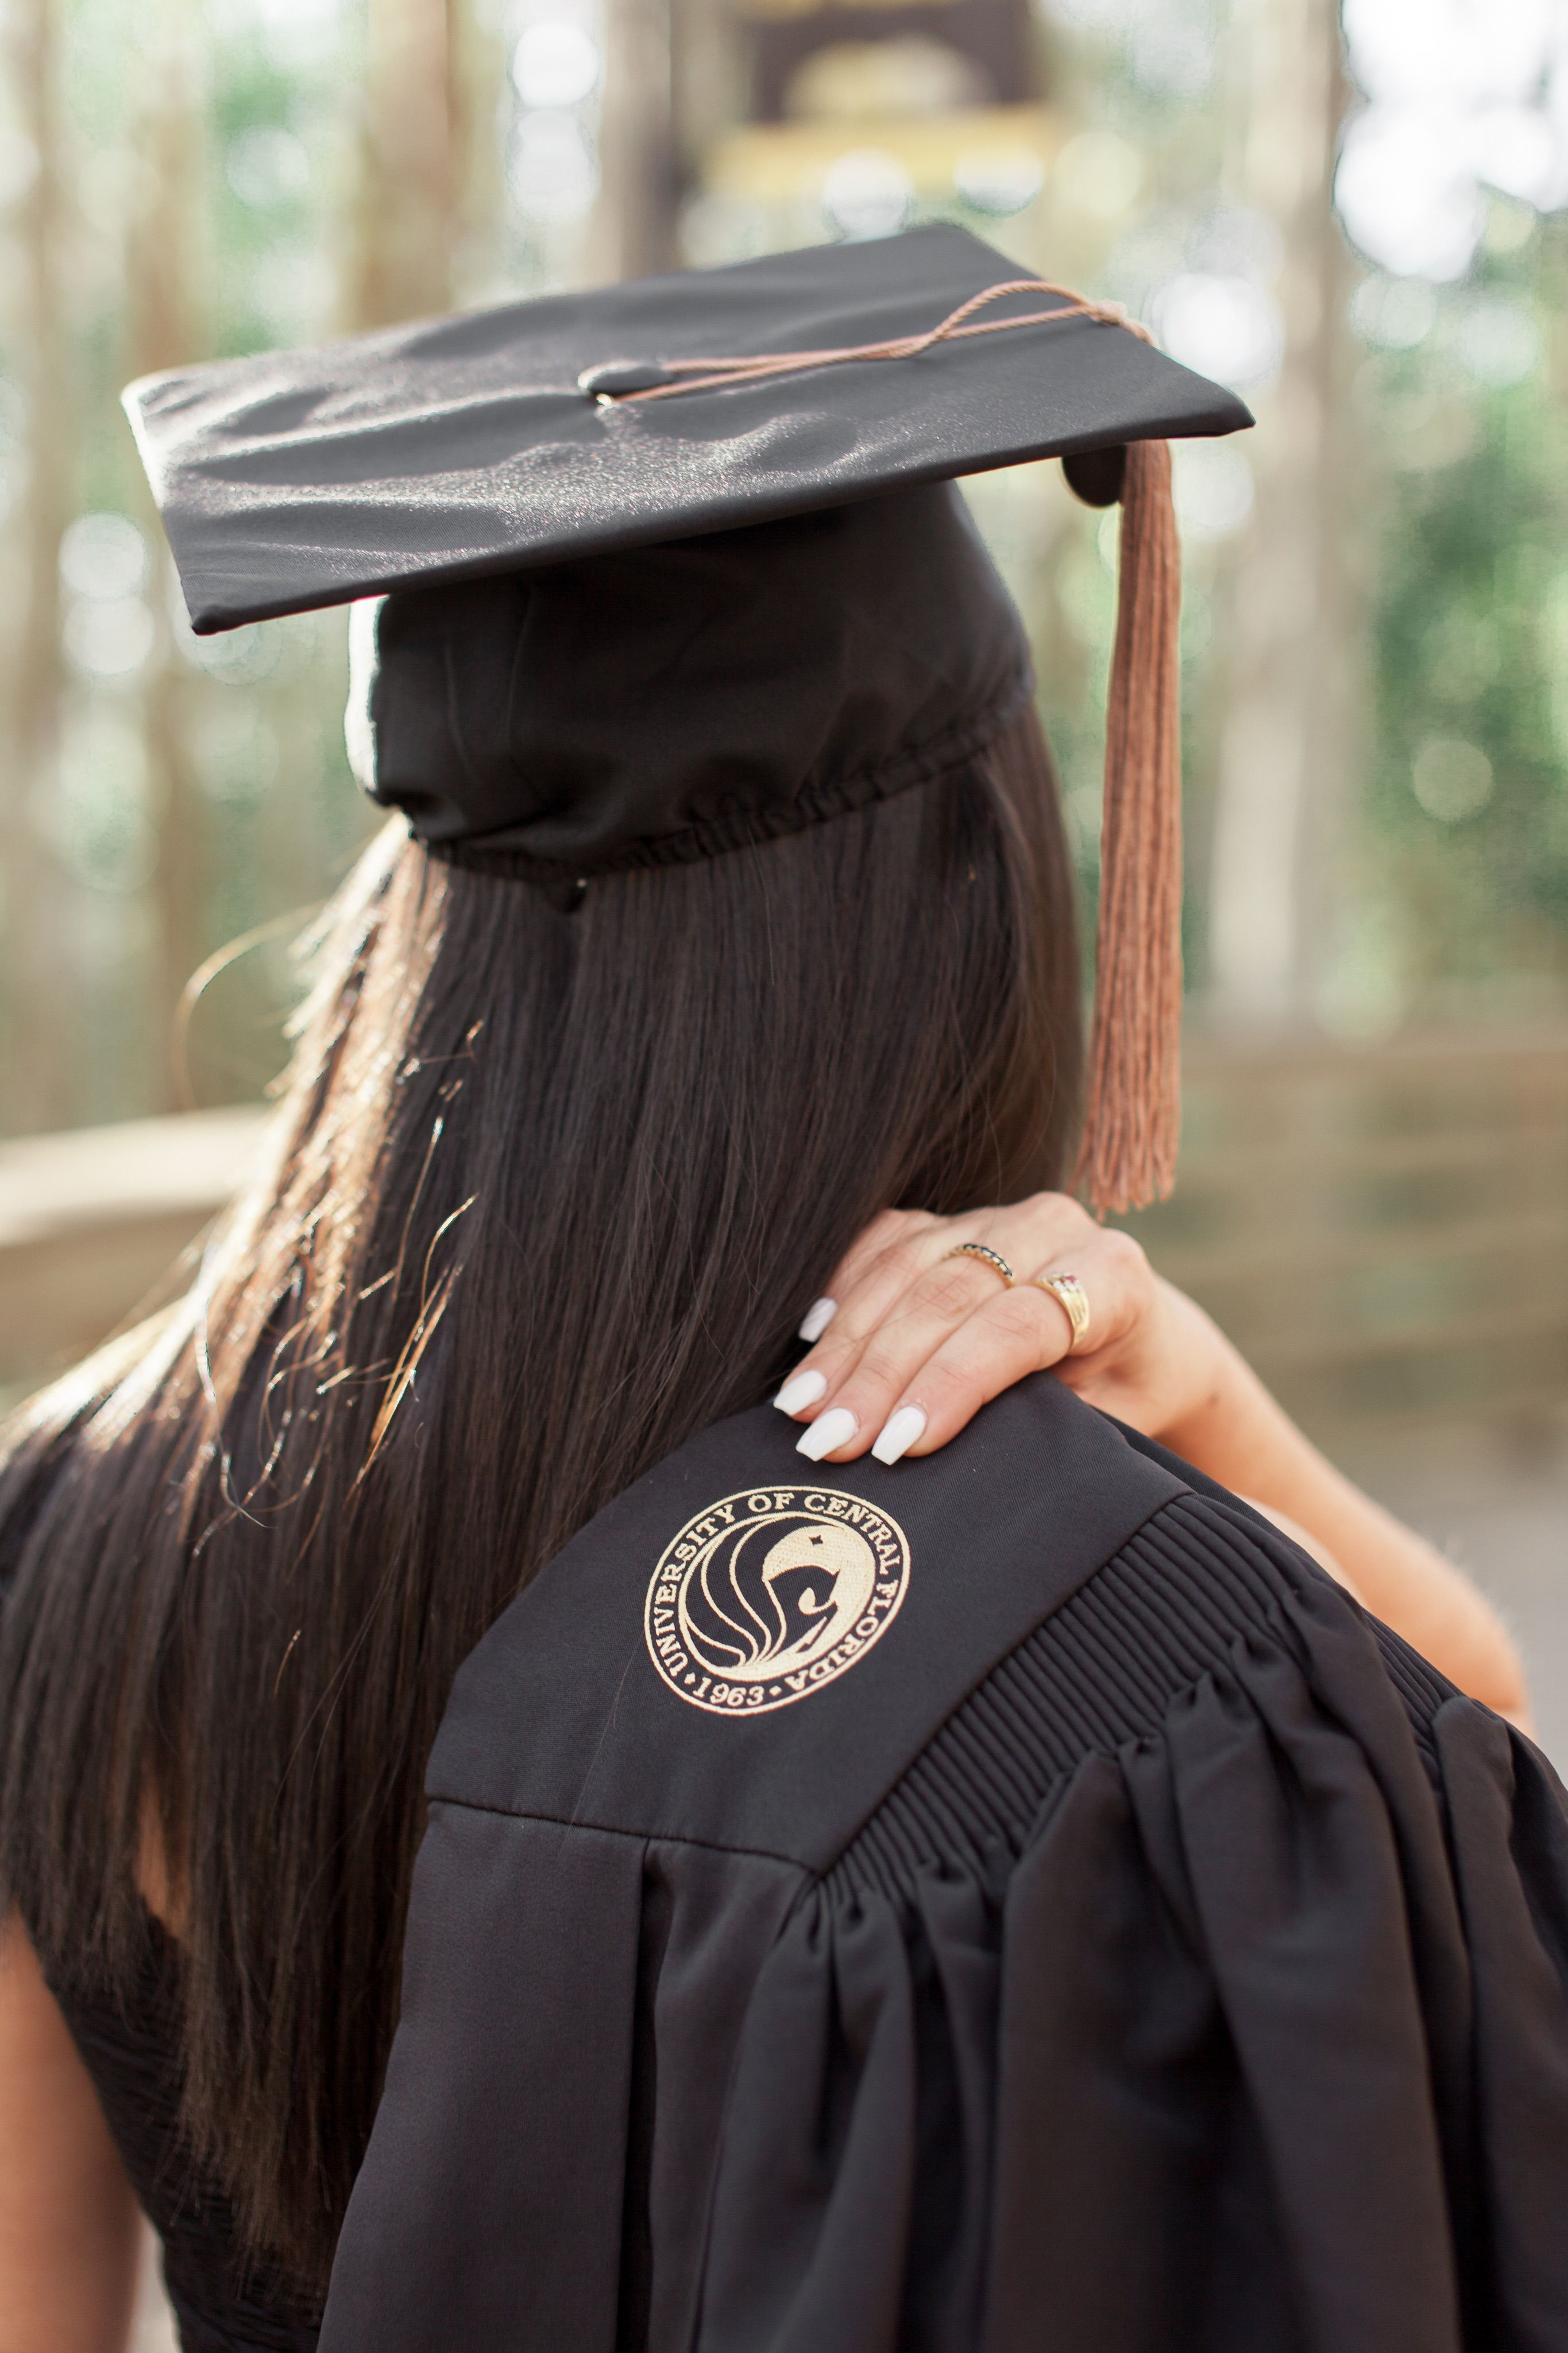 Graduation photos at the University of central Florida. Go Knights ...